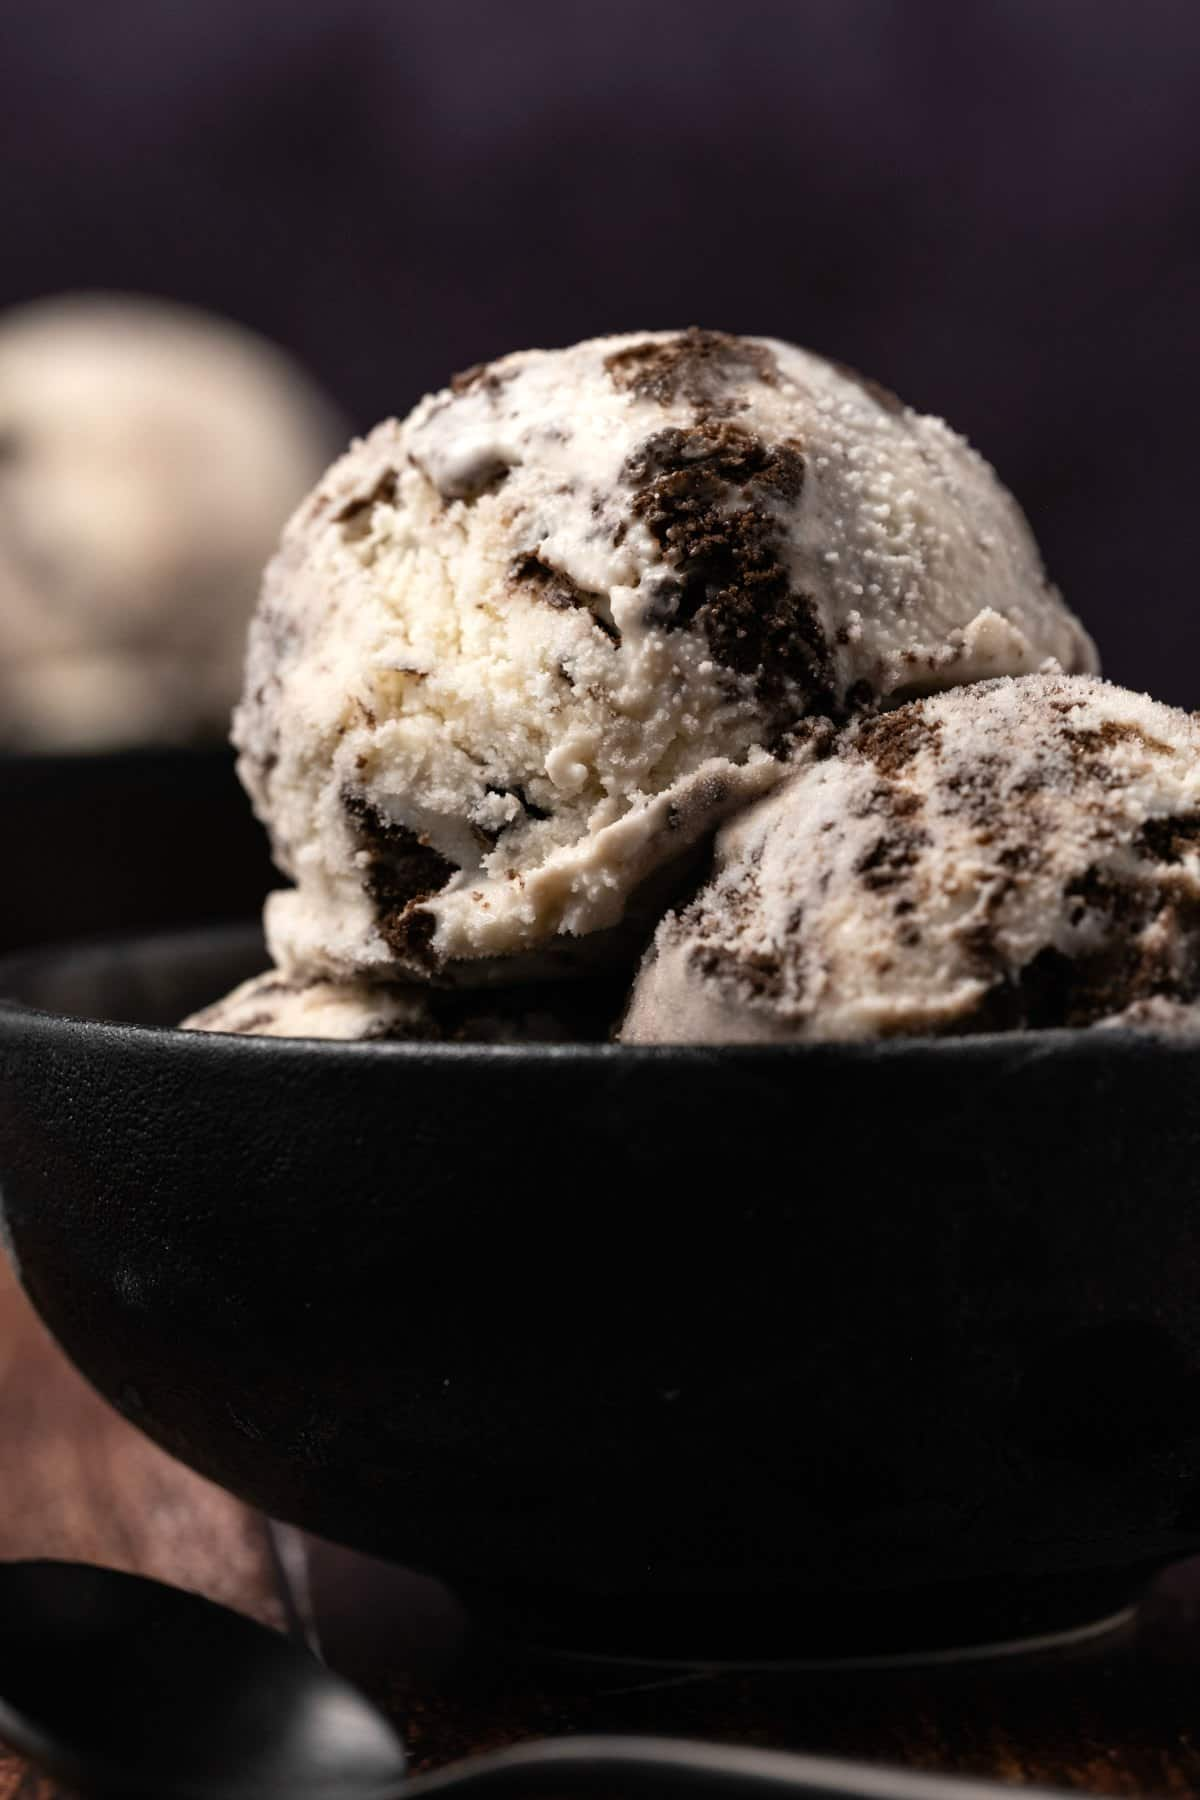 Scoops of cookies and cream ice cream in a black bowl.